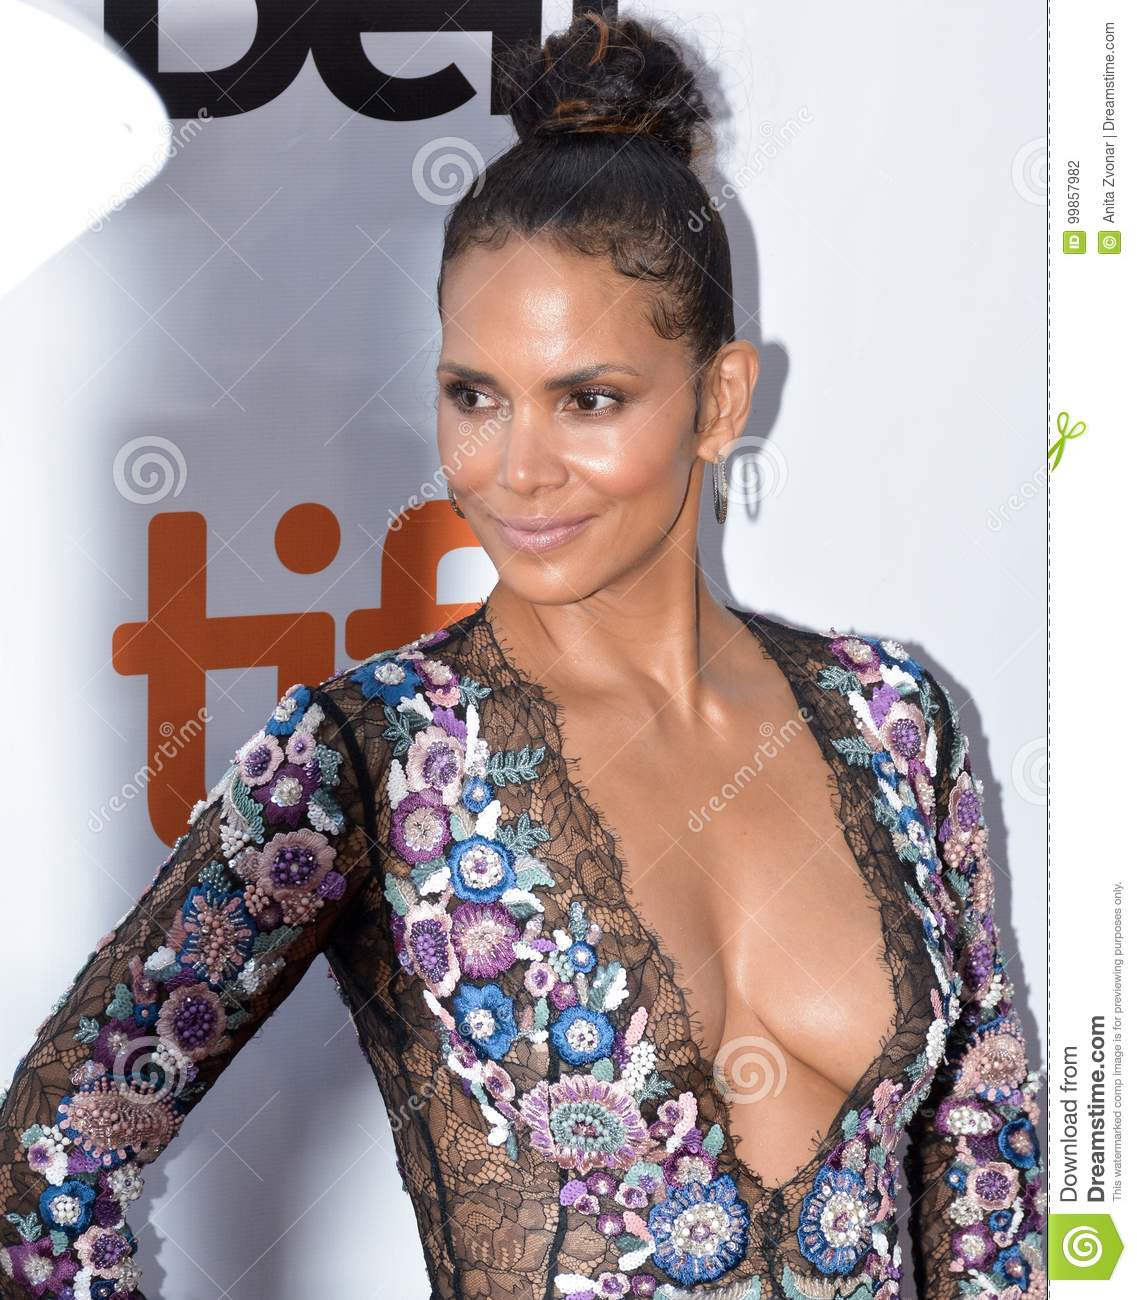 Halle Berry at the `Kings` premiere